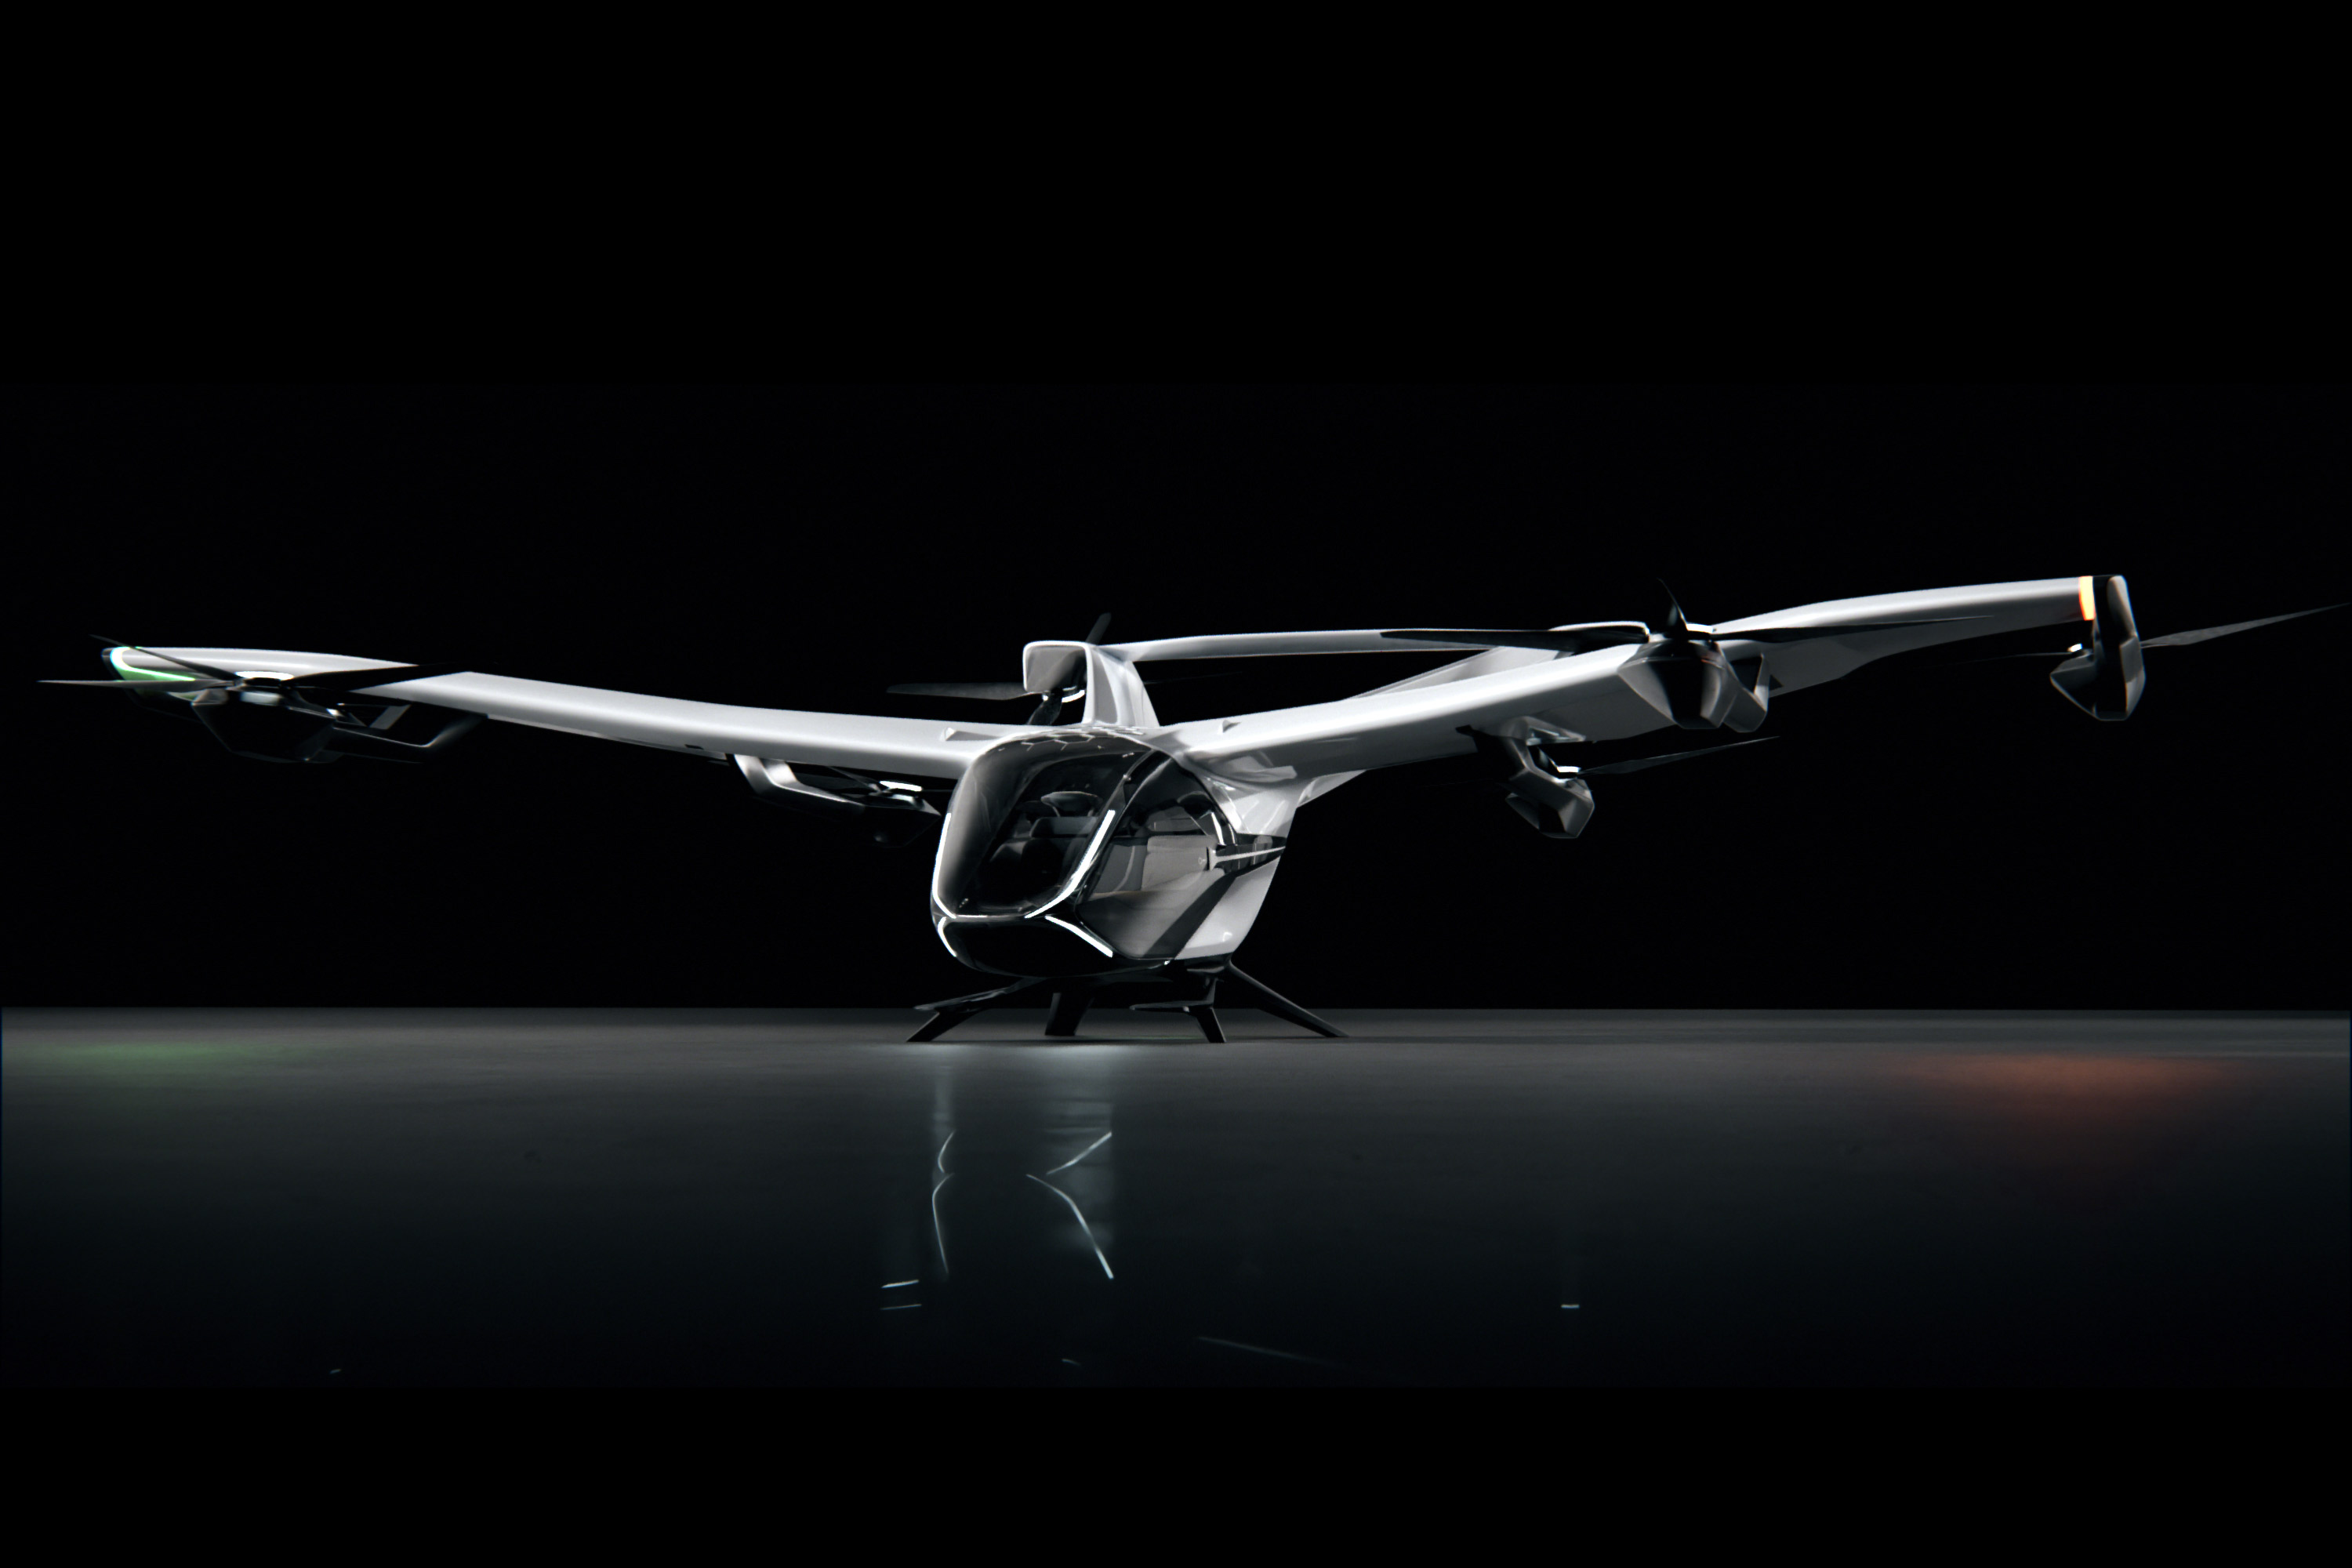 The NextGen CityAirbus eVTOL shoots surprisingly low, with four seats, a top speed of just 120 km/h, and a disappointing 80-km range